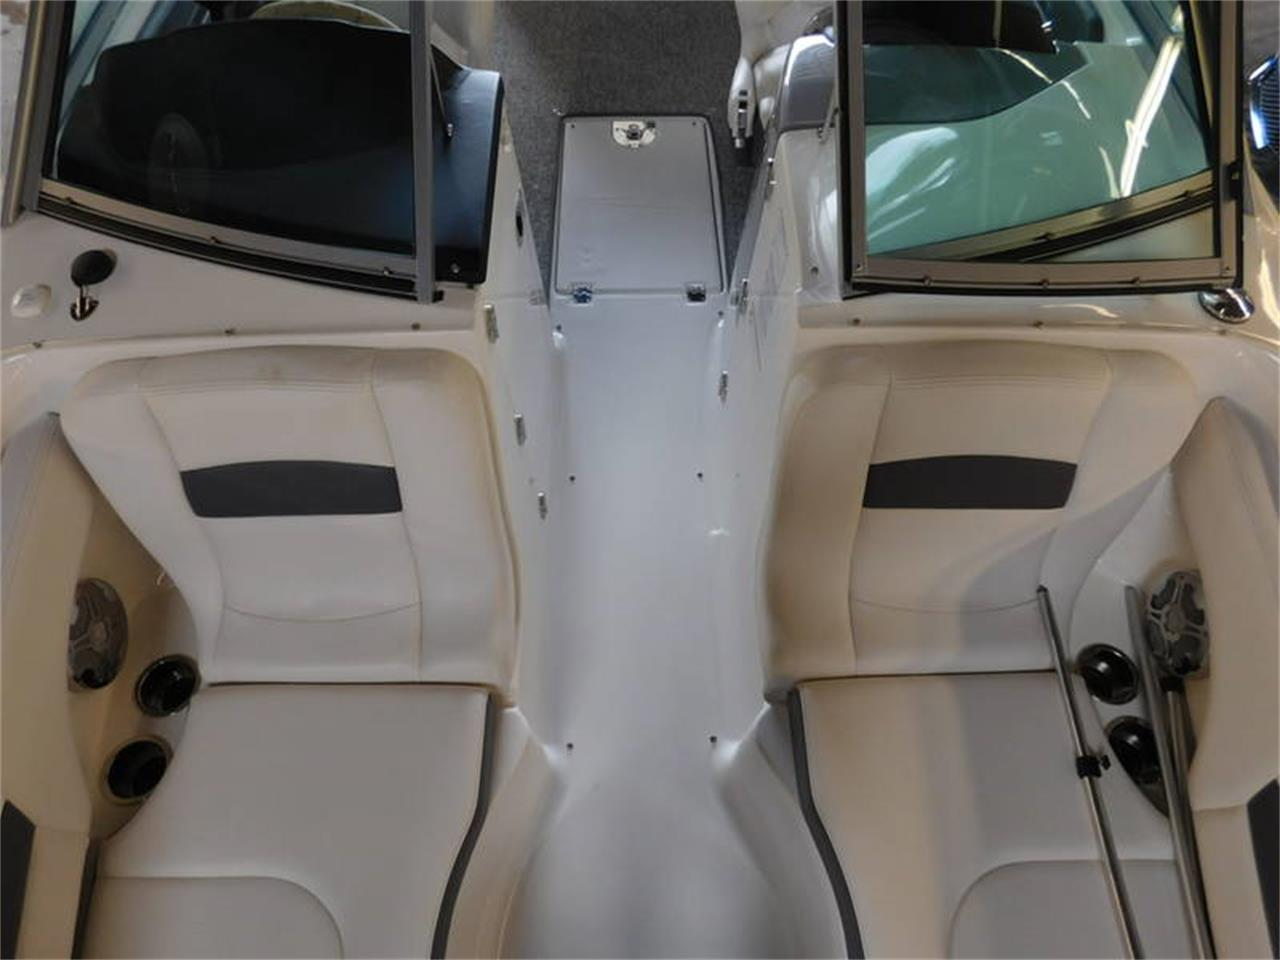 Large Picture of '14 Miscellaneous Boat - $59,999.00 - NV3P